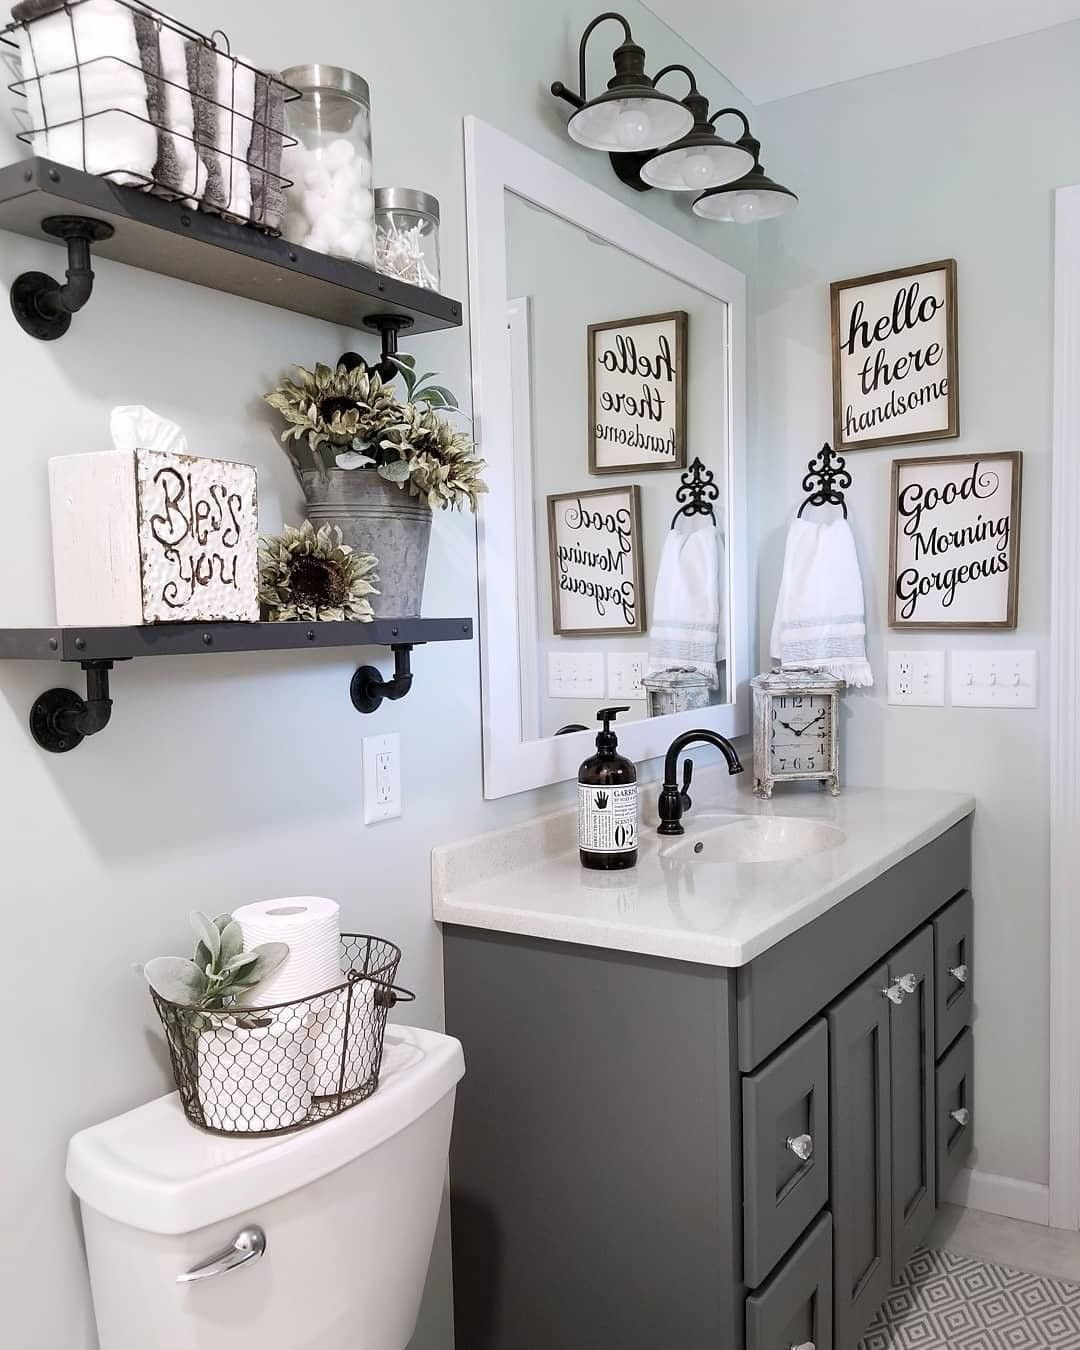 Wonderful Pictures Bathroom Color Schemes Tips The Majority Of Us Understand The Basics With Large In 2021 Small Bathroom Decor Restroom Decor Farmhouse Bathroom Decor